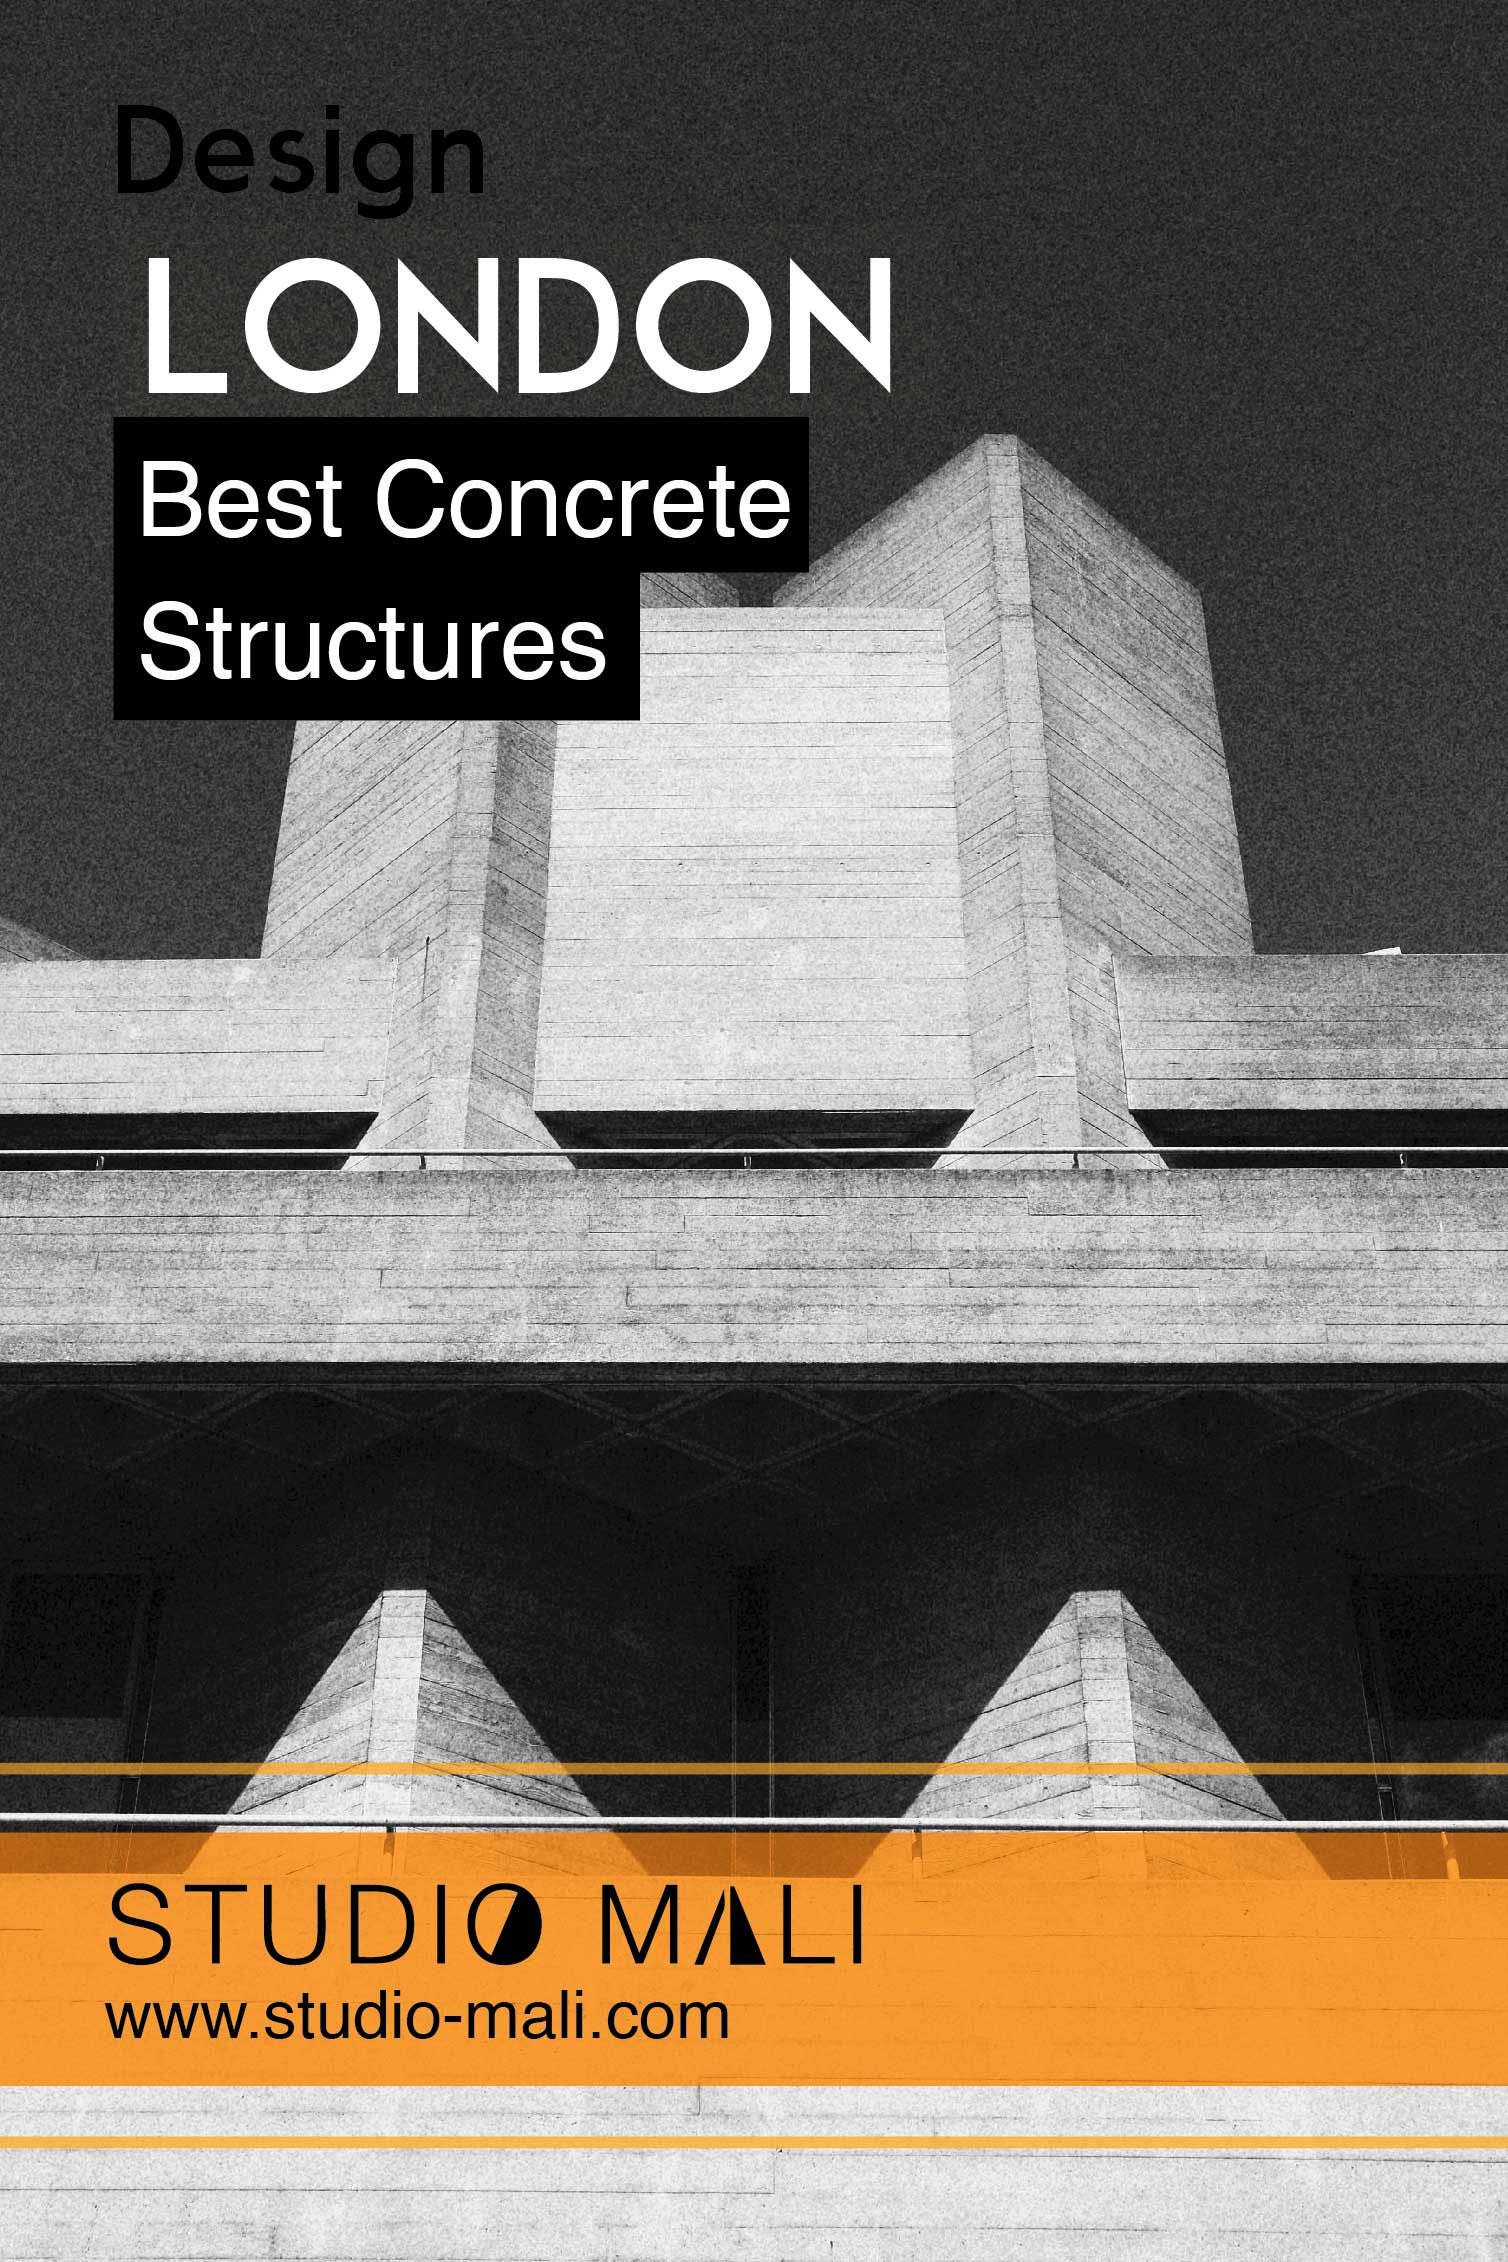 Design - The Best Concrete Structures In London, By Studio Mali-17.jpg